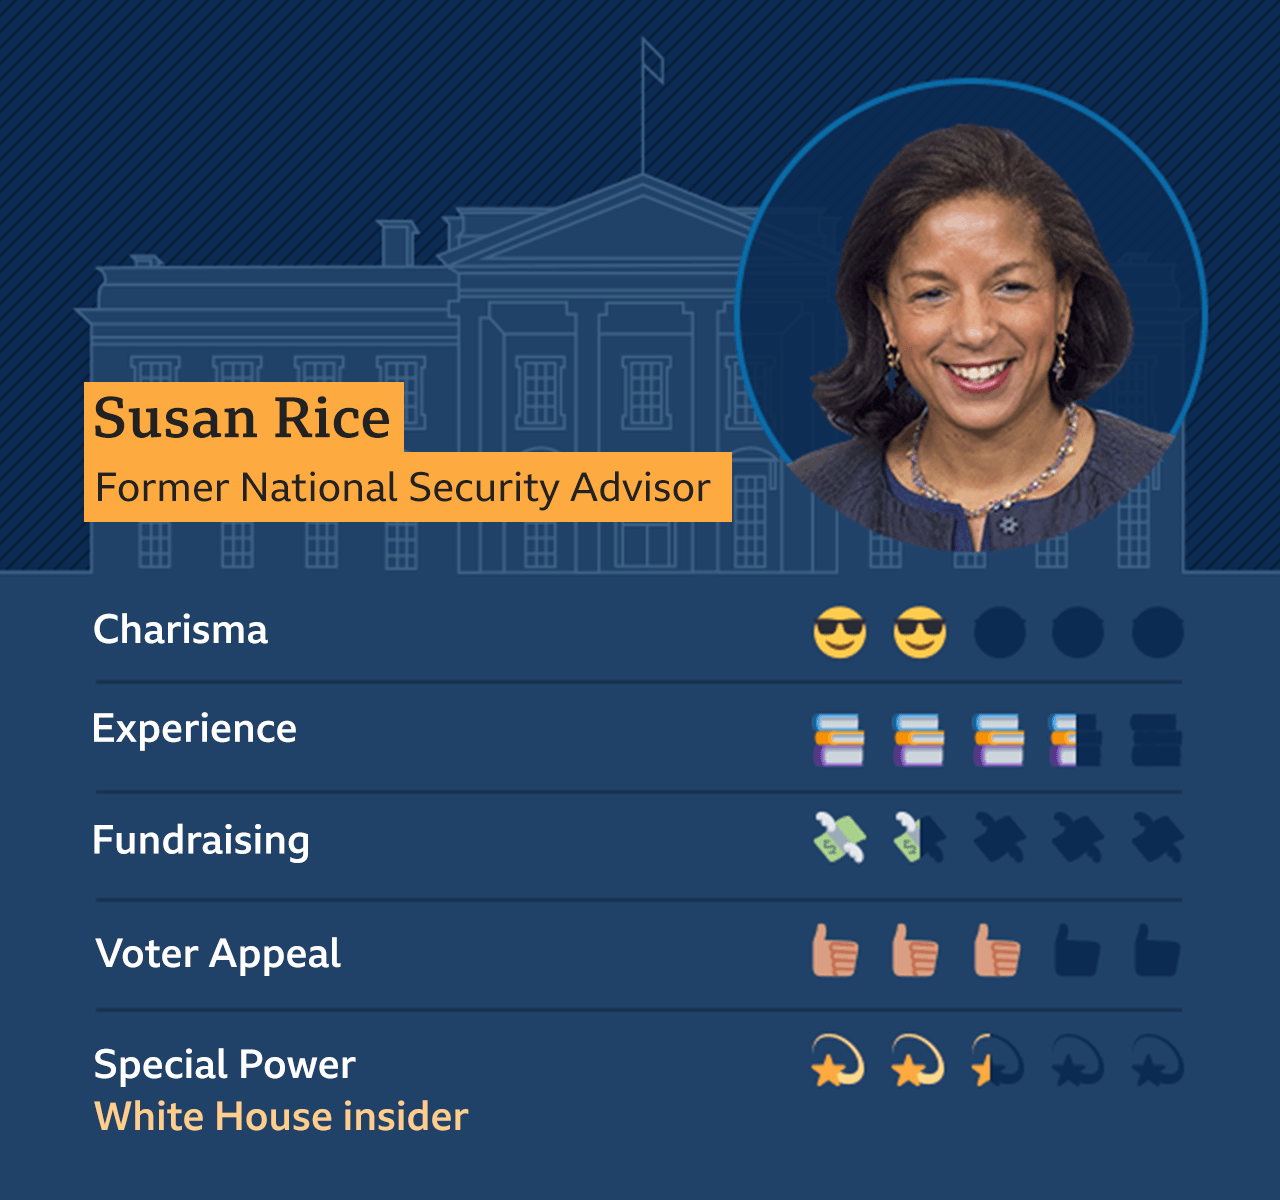 Graphic of Susan Rice, Former National Security Advisor: Charisma - 2, Experience - 3.5, Fundraising - 1, Voter Appeal - 3, Special Power - White House insider - 2.5